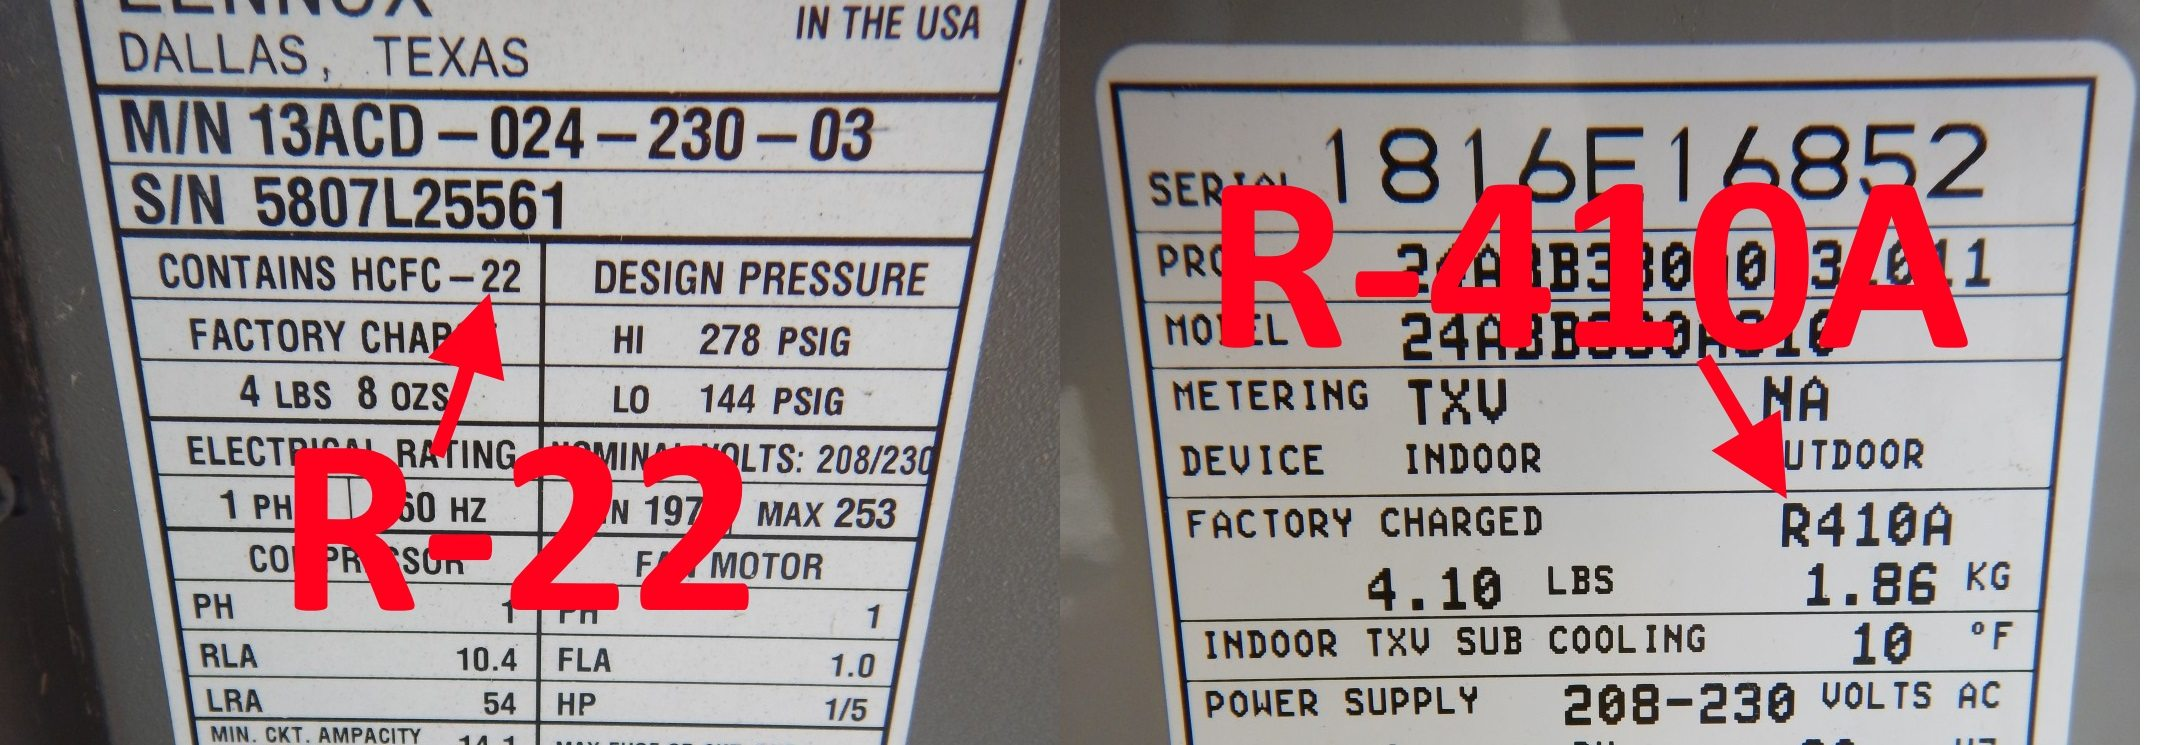 Does your air conditioner use R-22 refrigerant? Here's why you